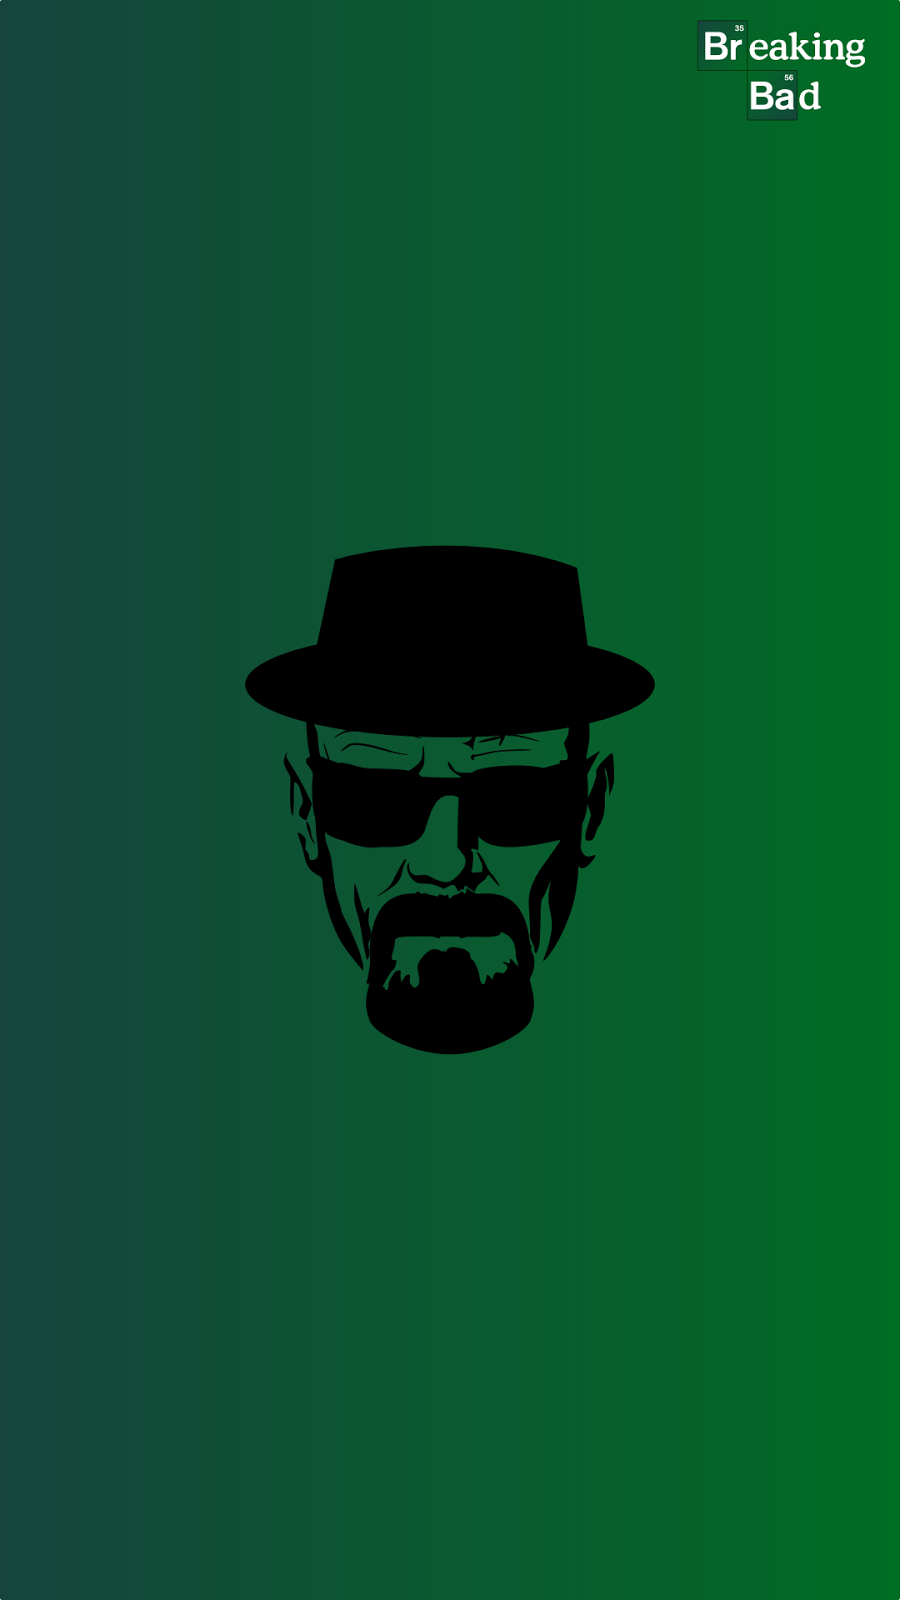 Breaking Bad Wallpaper 4k Posted By Ryan Johnson